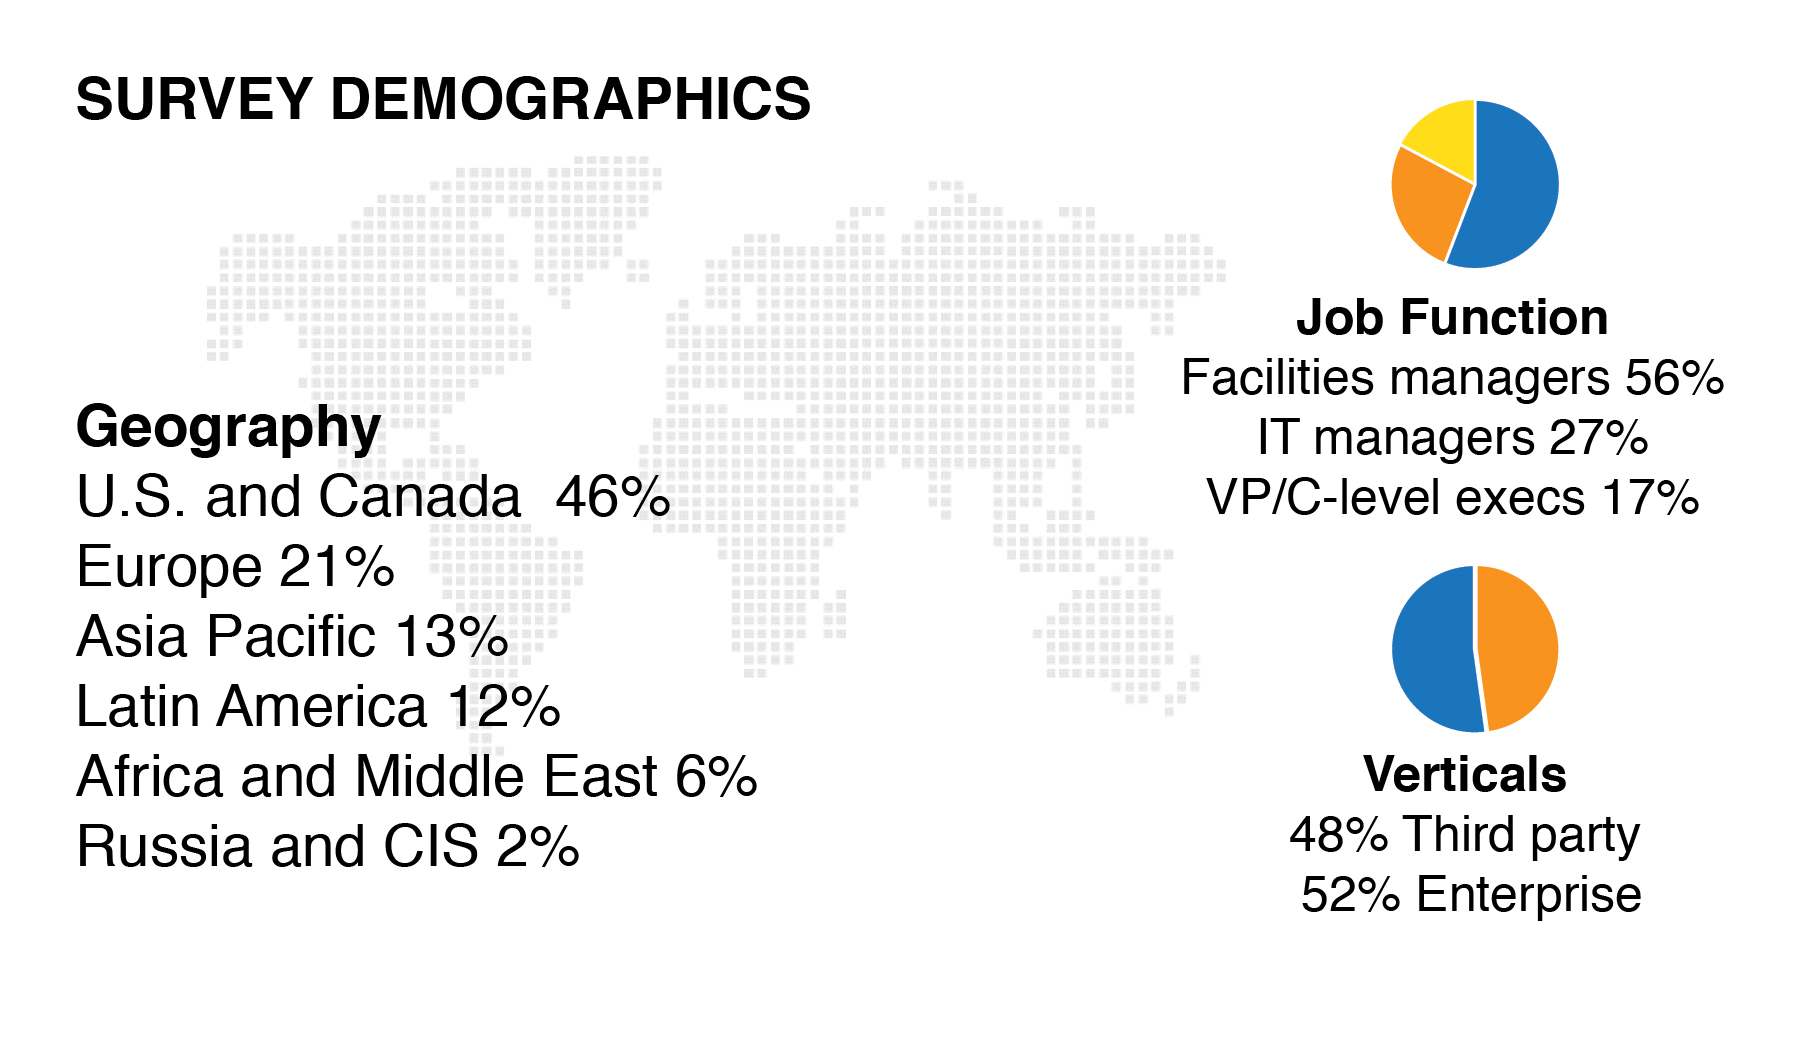 See survey demographics graphic